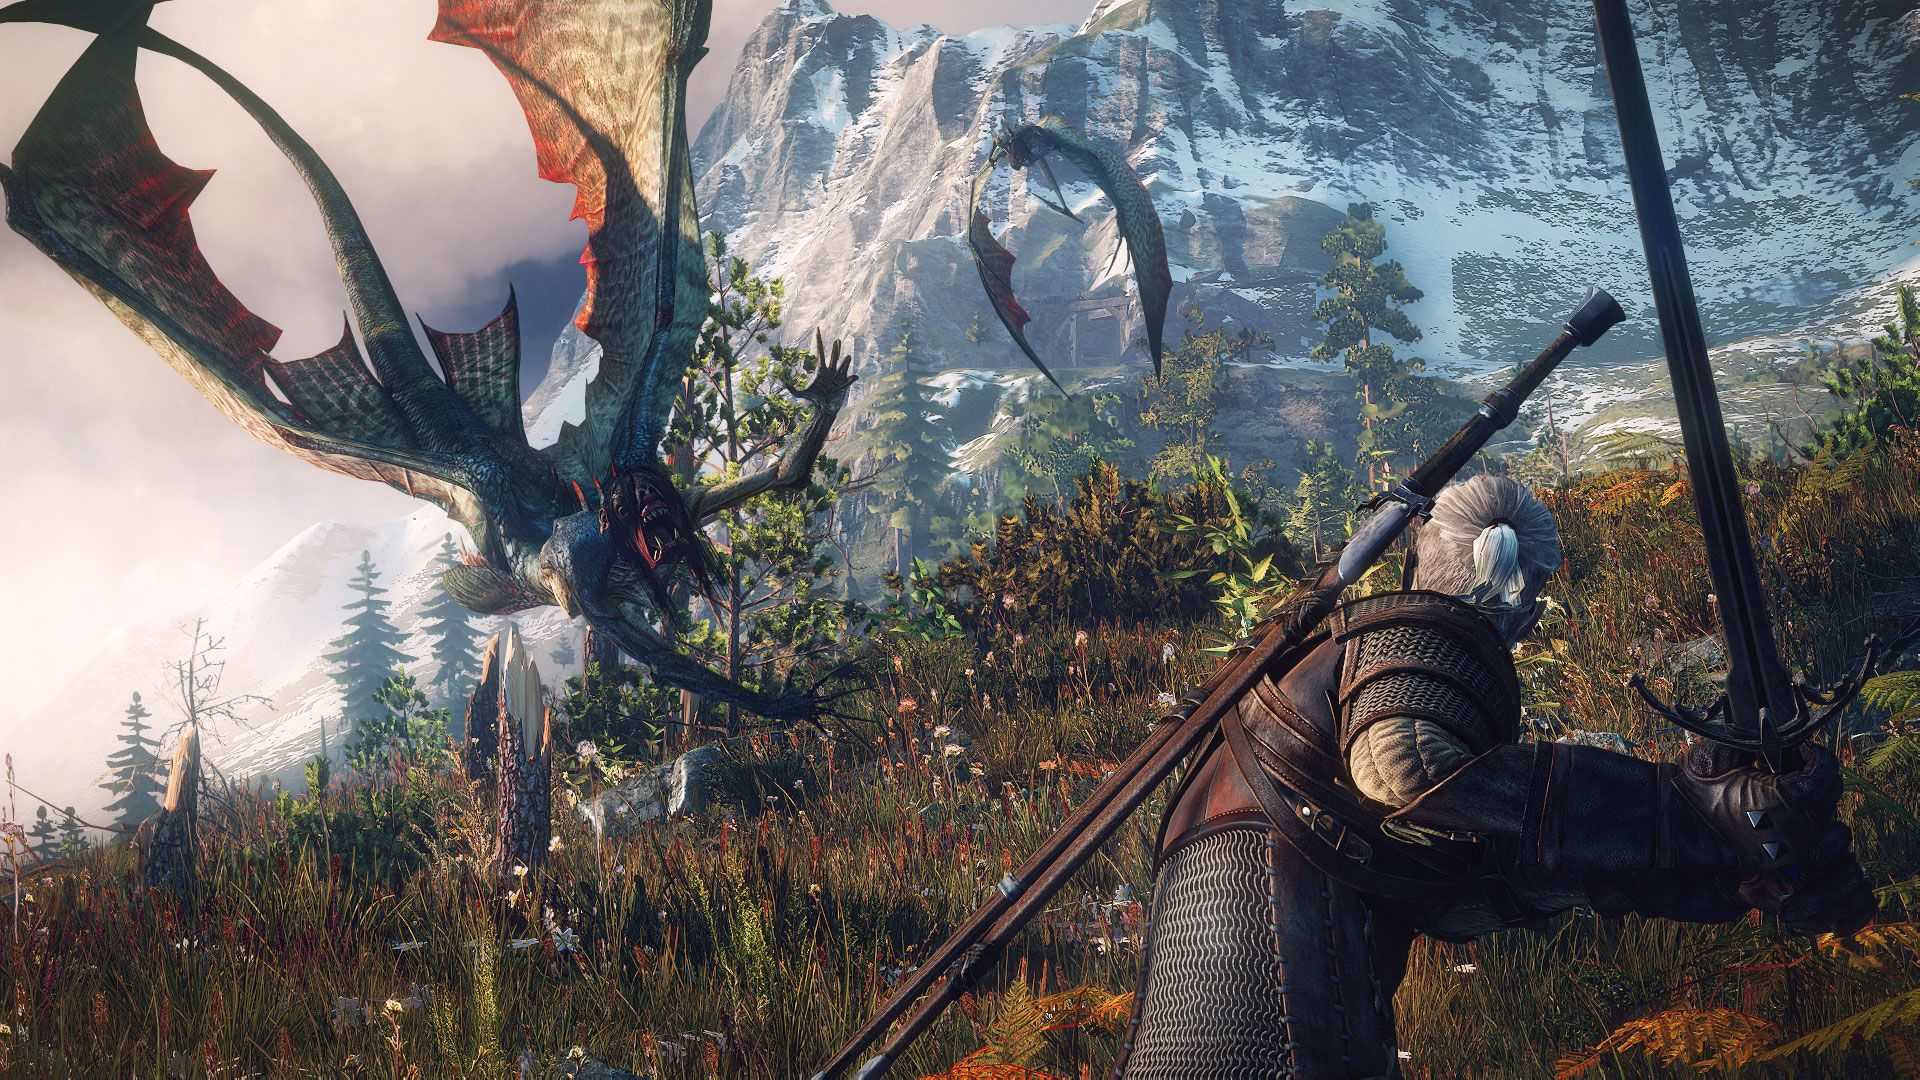 The_Witcher_3_Wild_Hunt_The_sirens_may_look_beautiful_in_the_water-but_once_they_re_out_of_it-they_change_into_deadly-flying_creatures..0